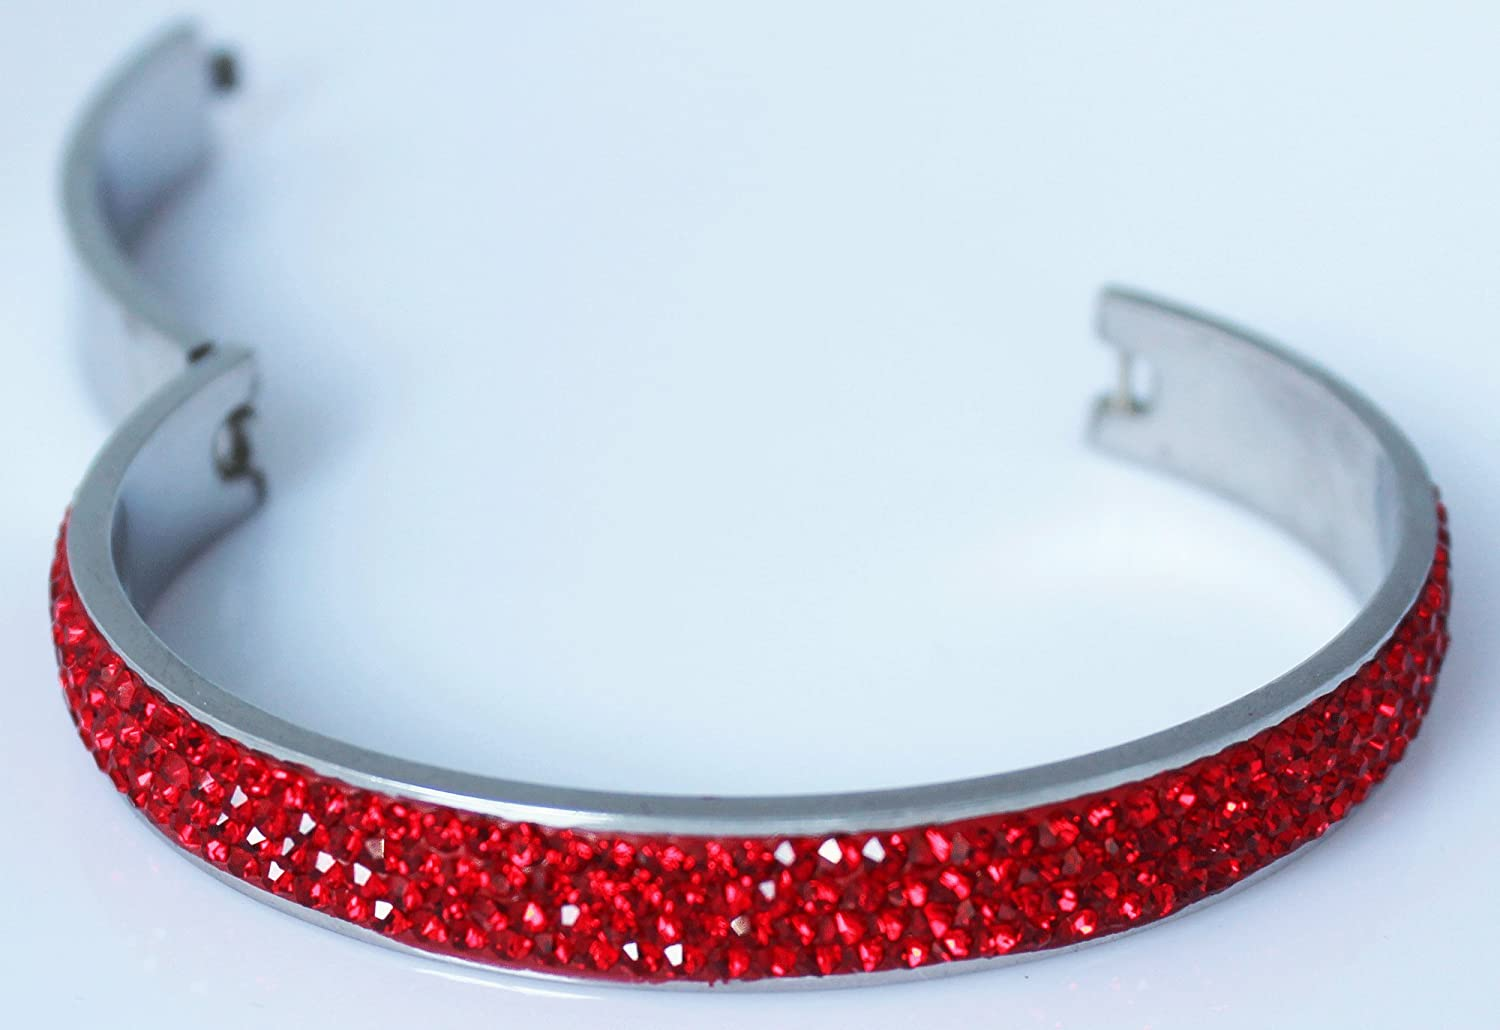 with 4 Rows of Beautiful Sparkly Crystal Rhinestones Sophistikitty Hinged Bangle 10mm in Width